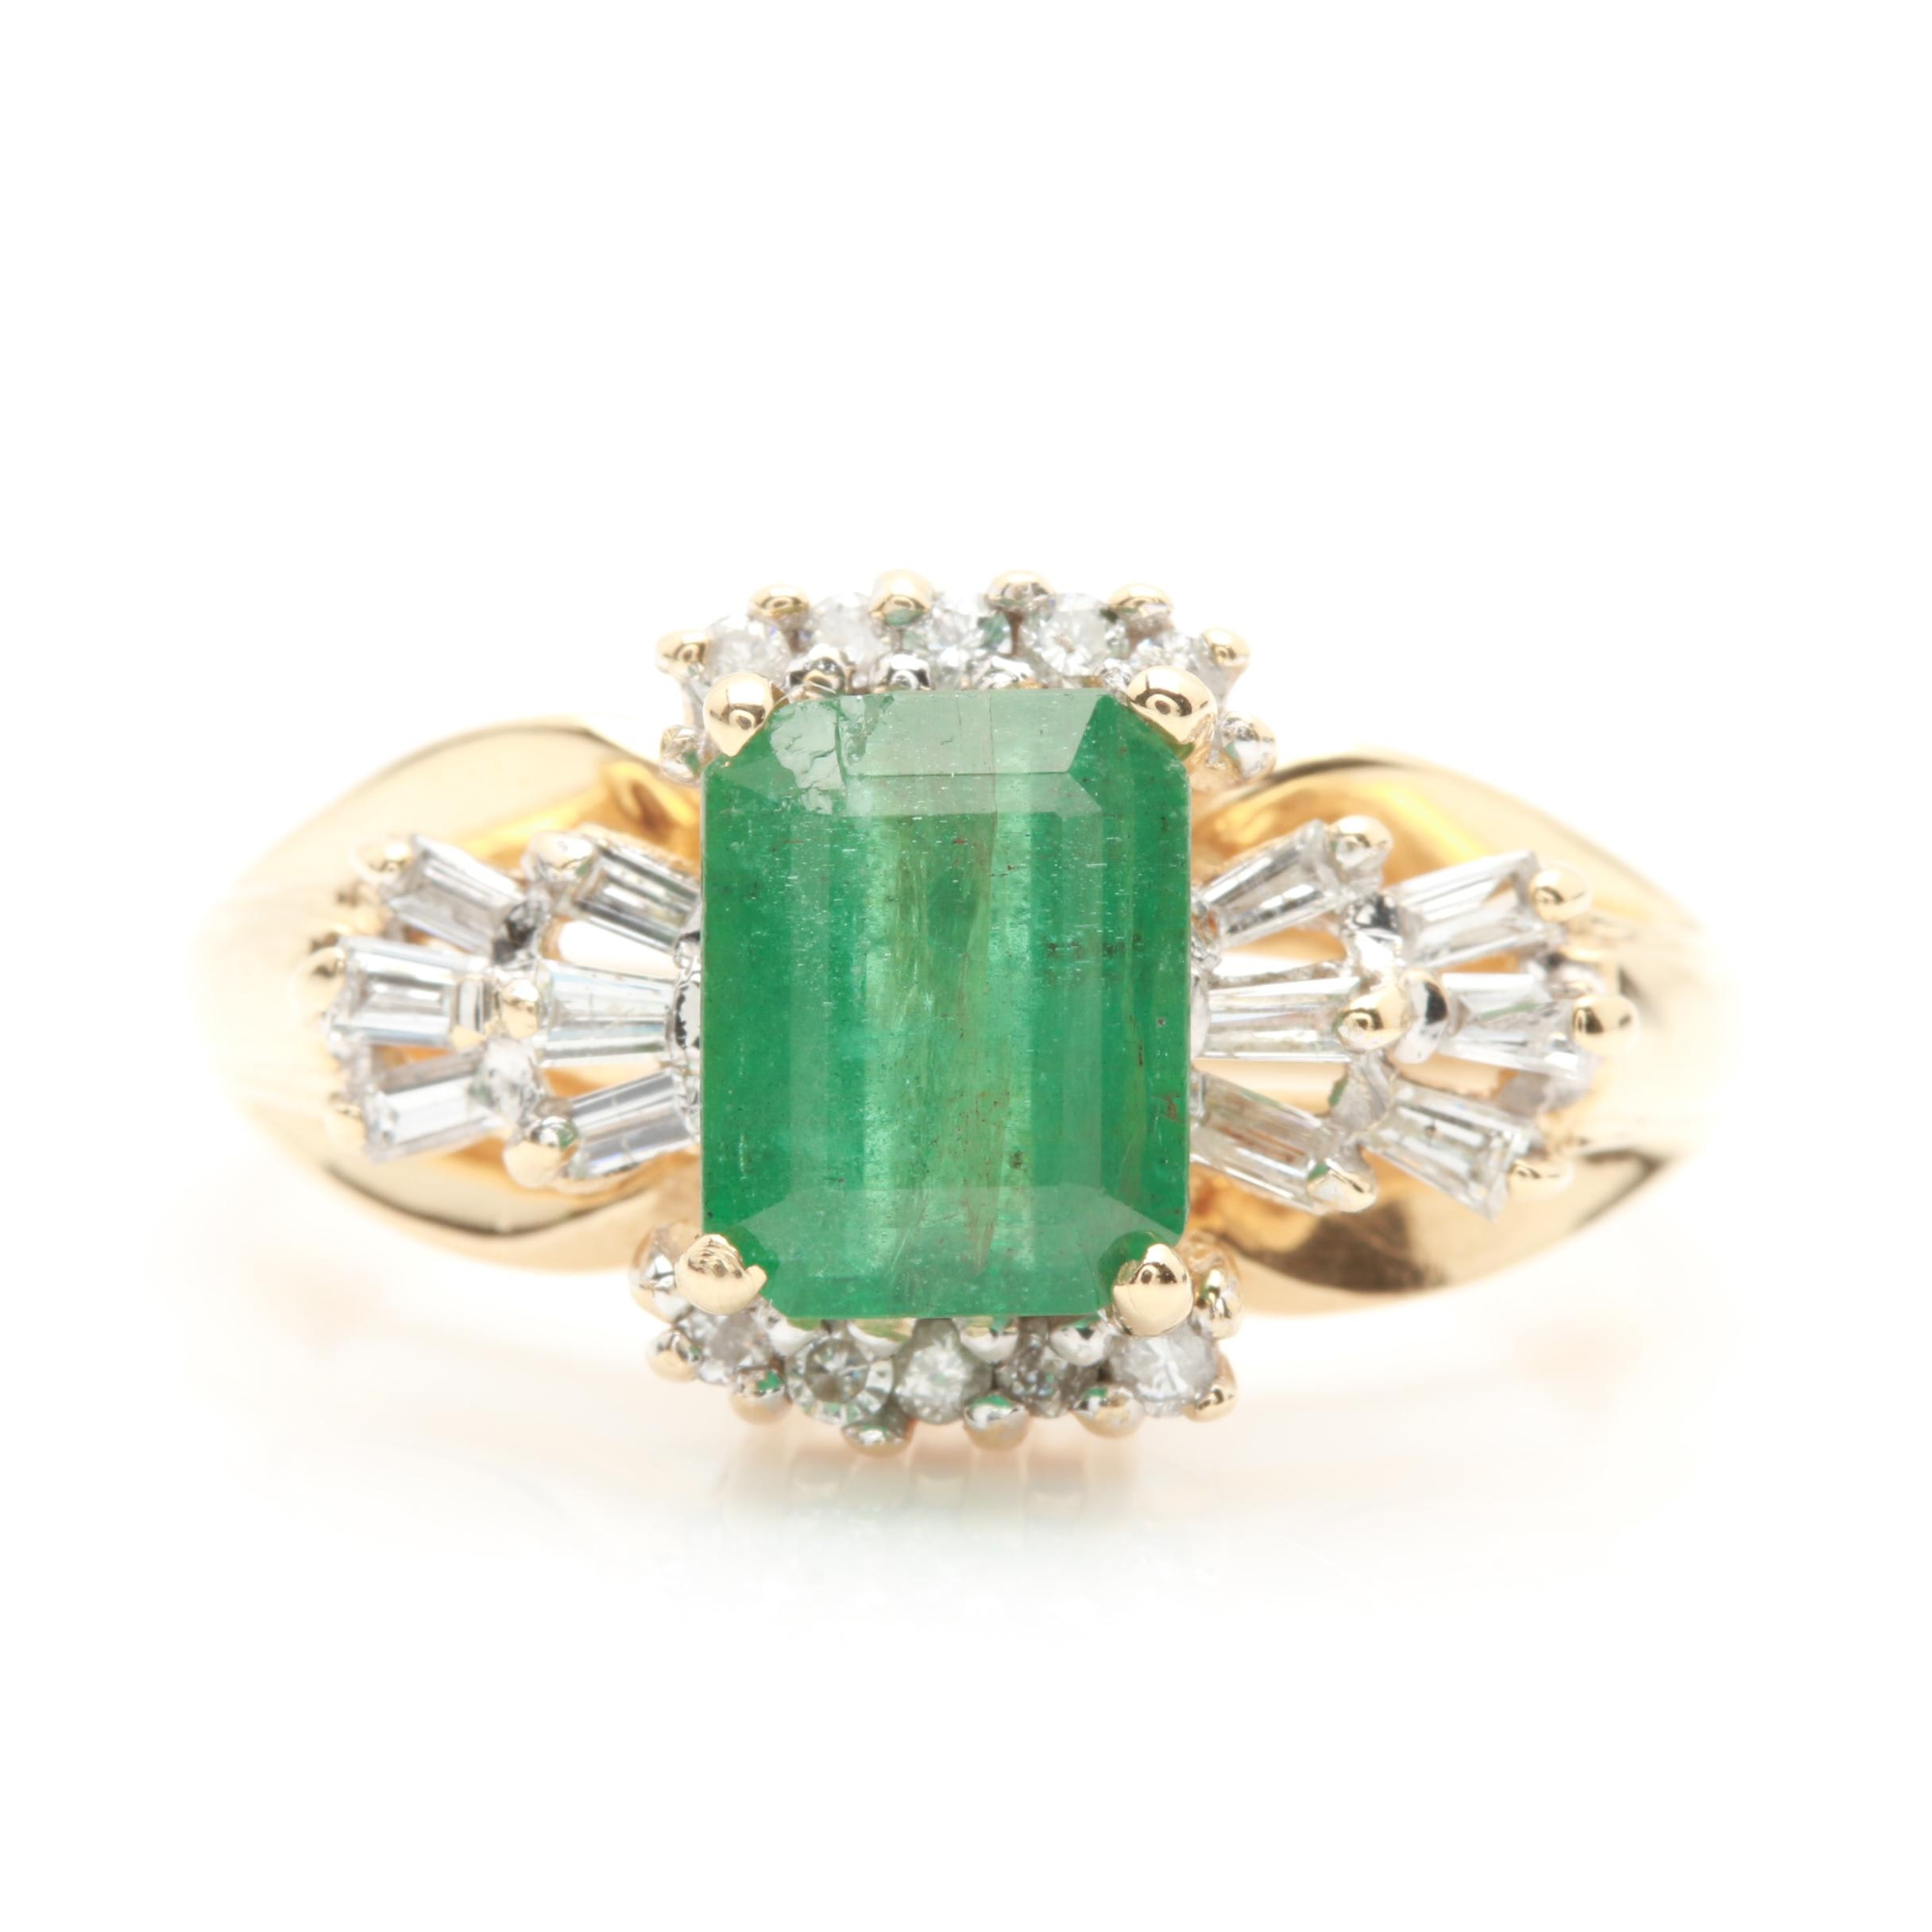 14K Yellow Gold 1.55 CT Emerald and Diamond Ring